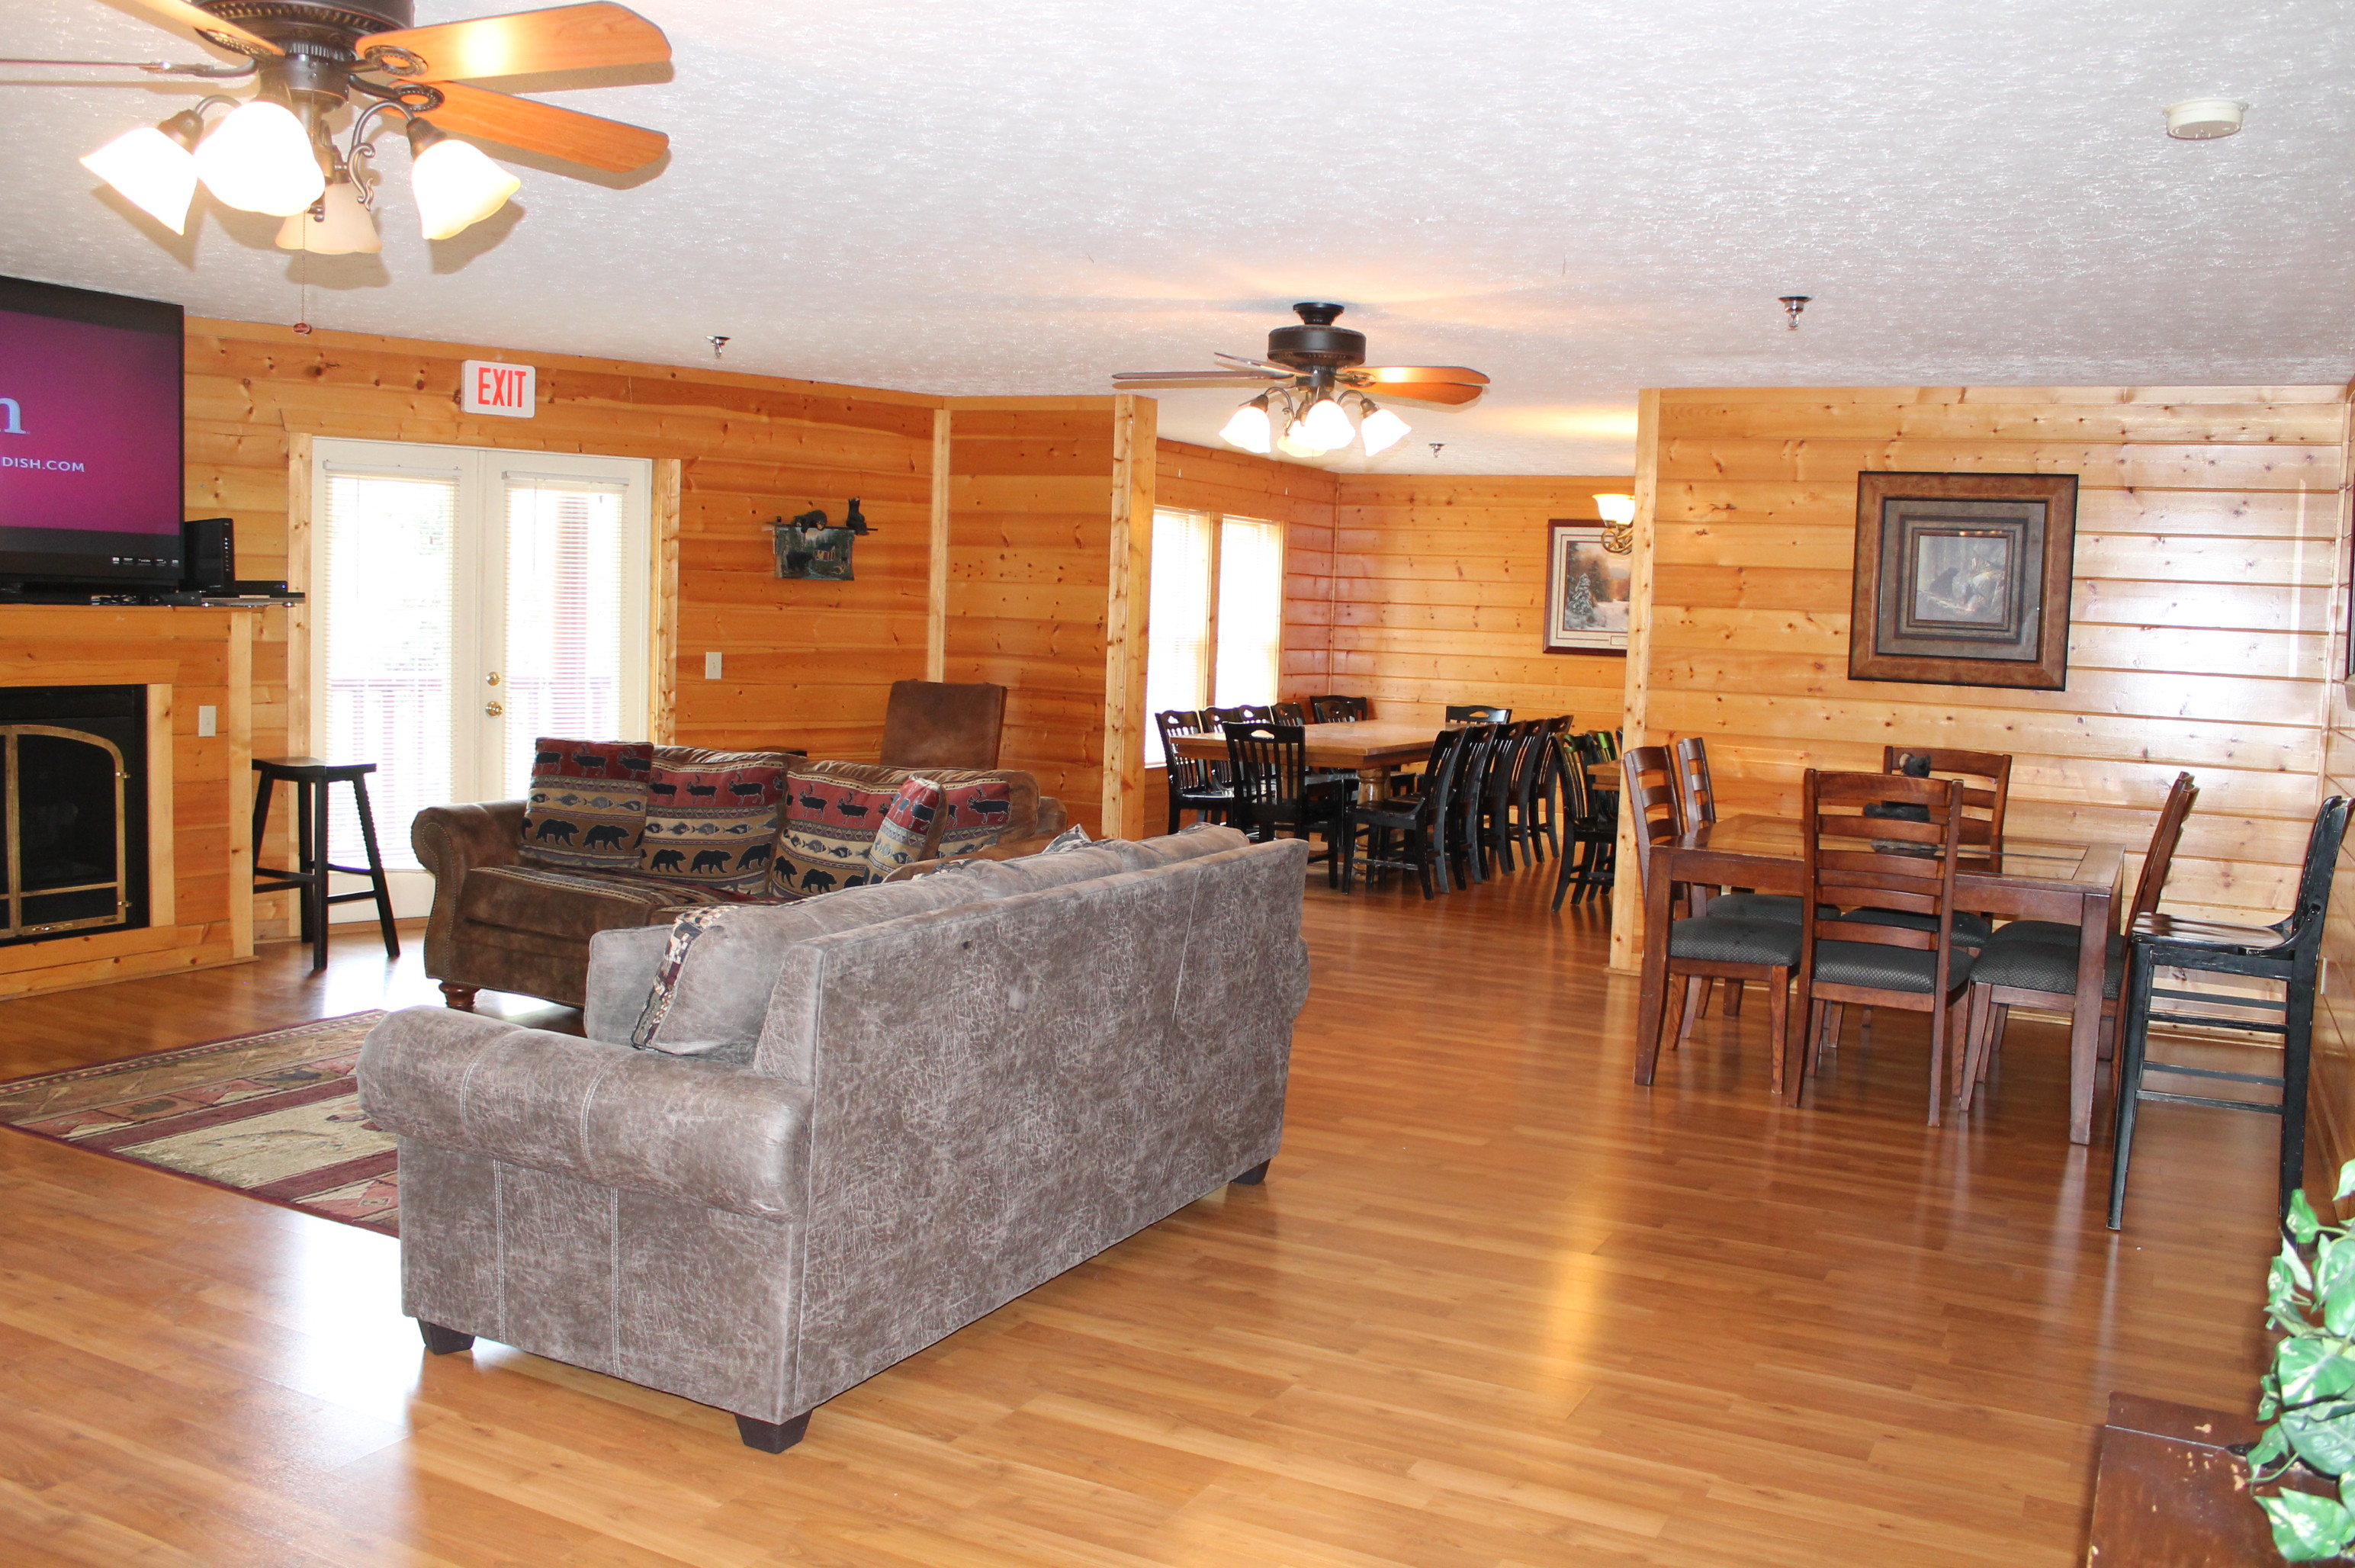 rental for mountain views chalets pigeon fivebedroom with cabins theater rentals bedroom fireside chalet four big gameroom forge dsc tennessee and room bear cheap rent cabin